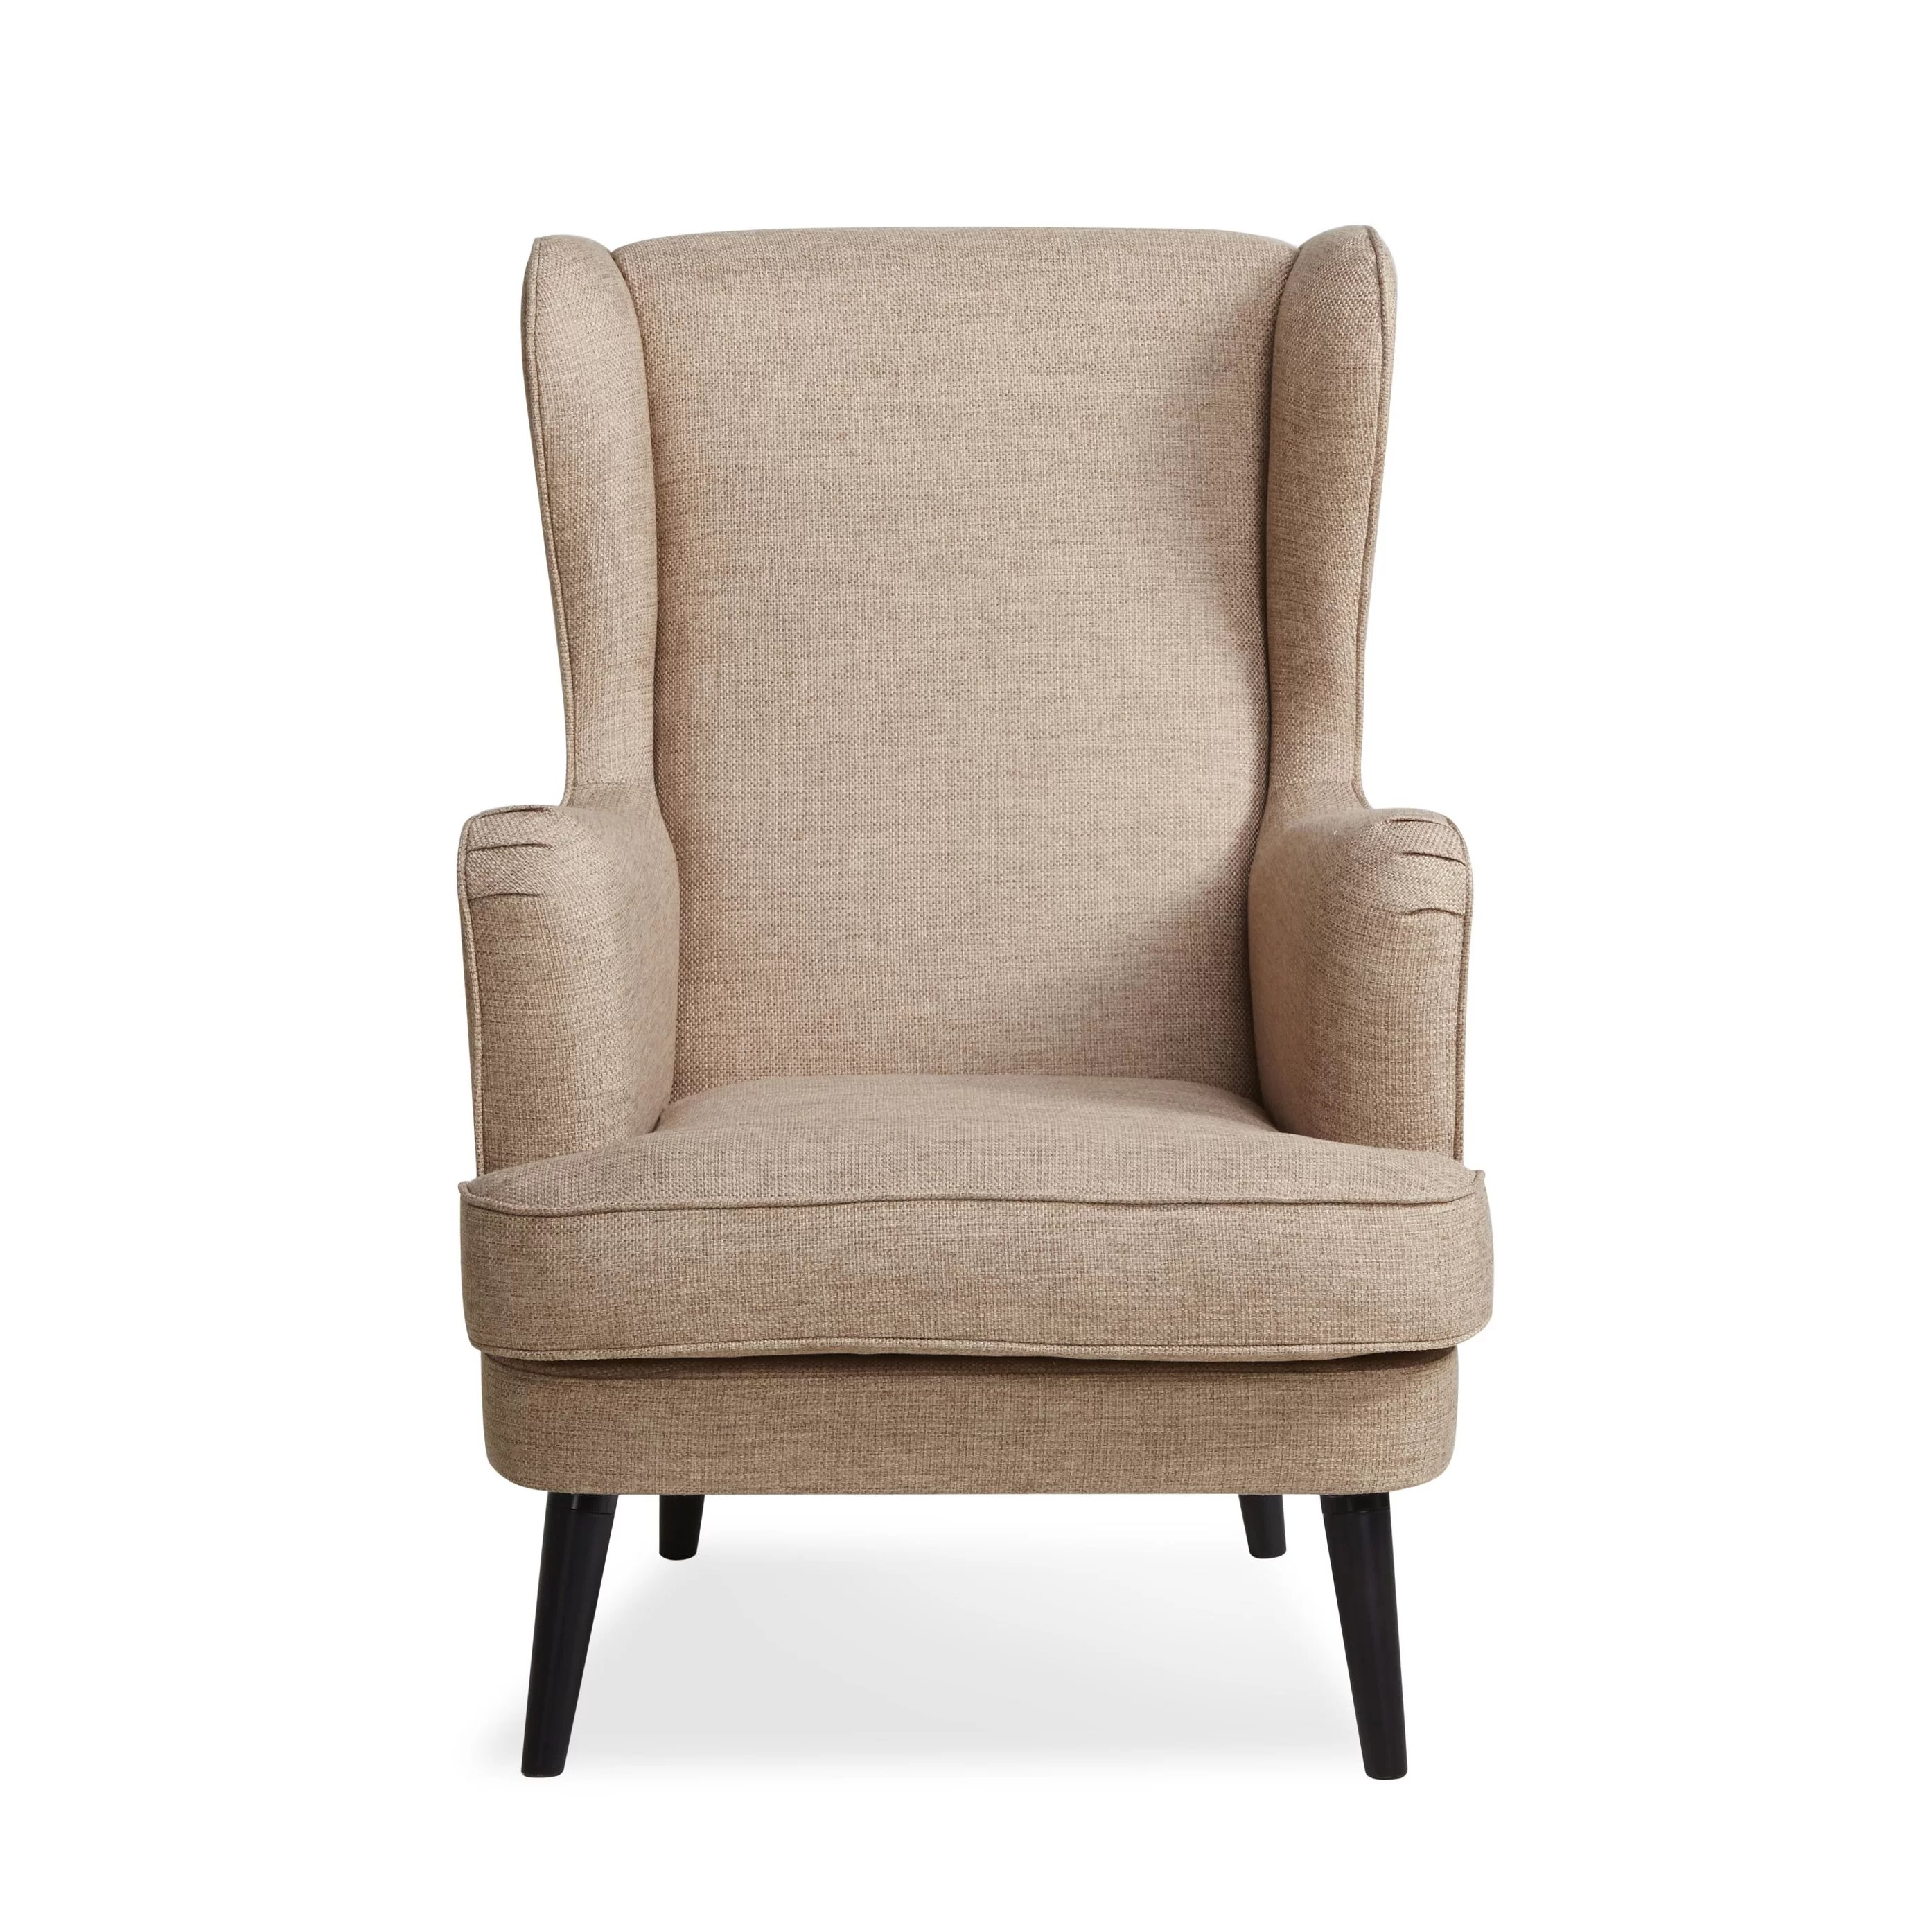 Darby Home Co Brigance Wingback Chair  Reviews  Wayfair